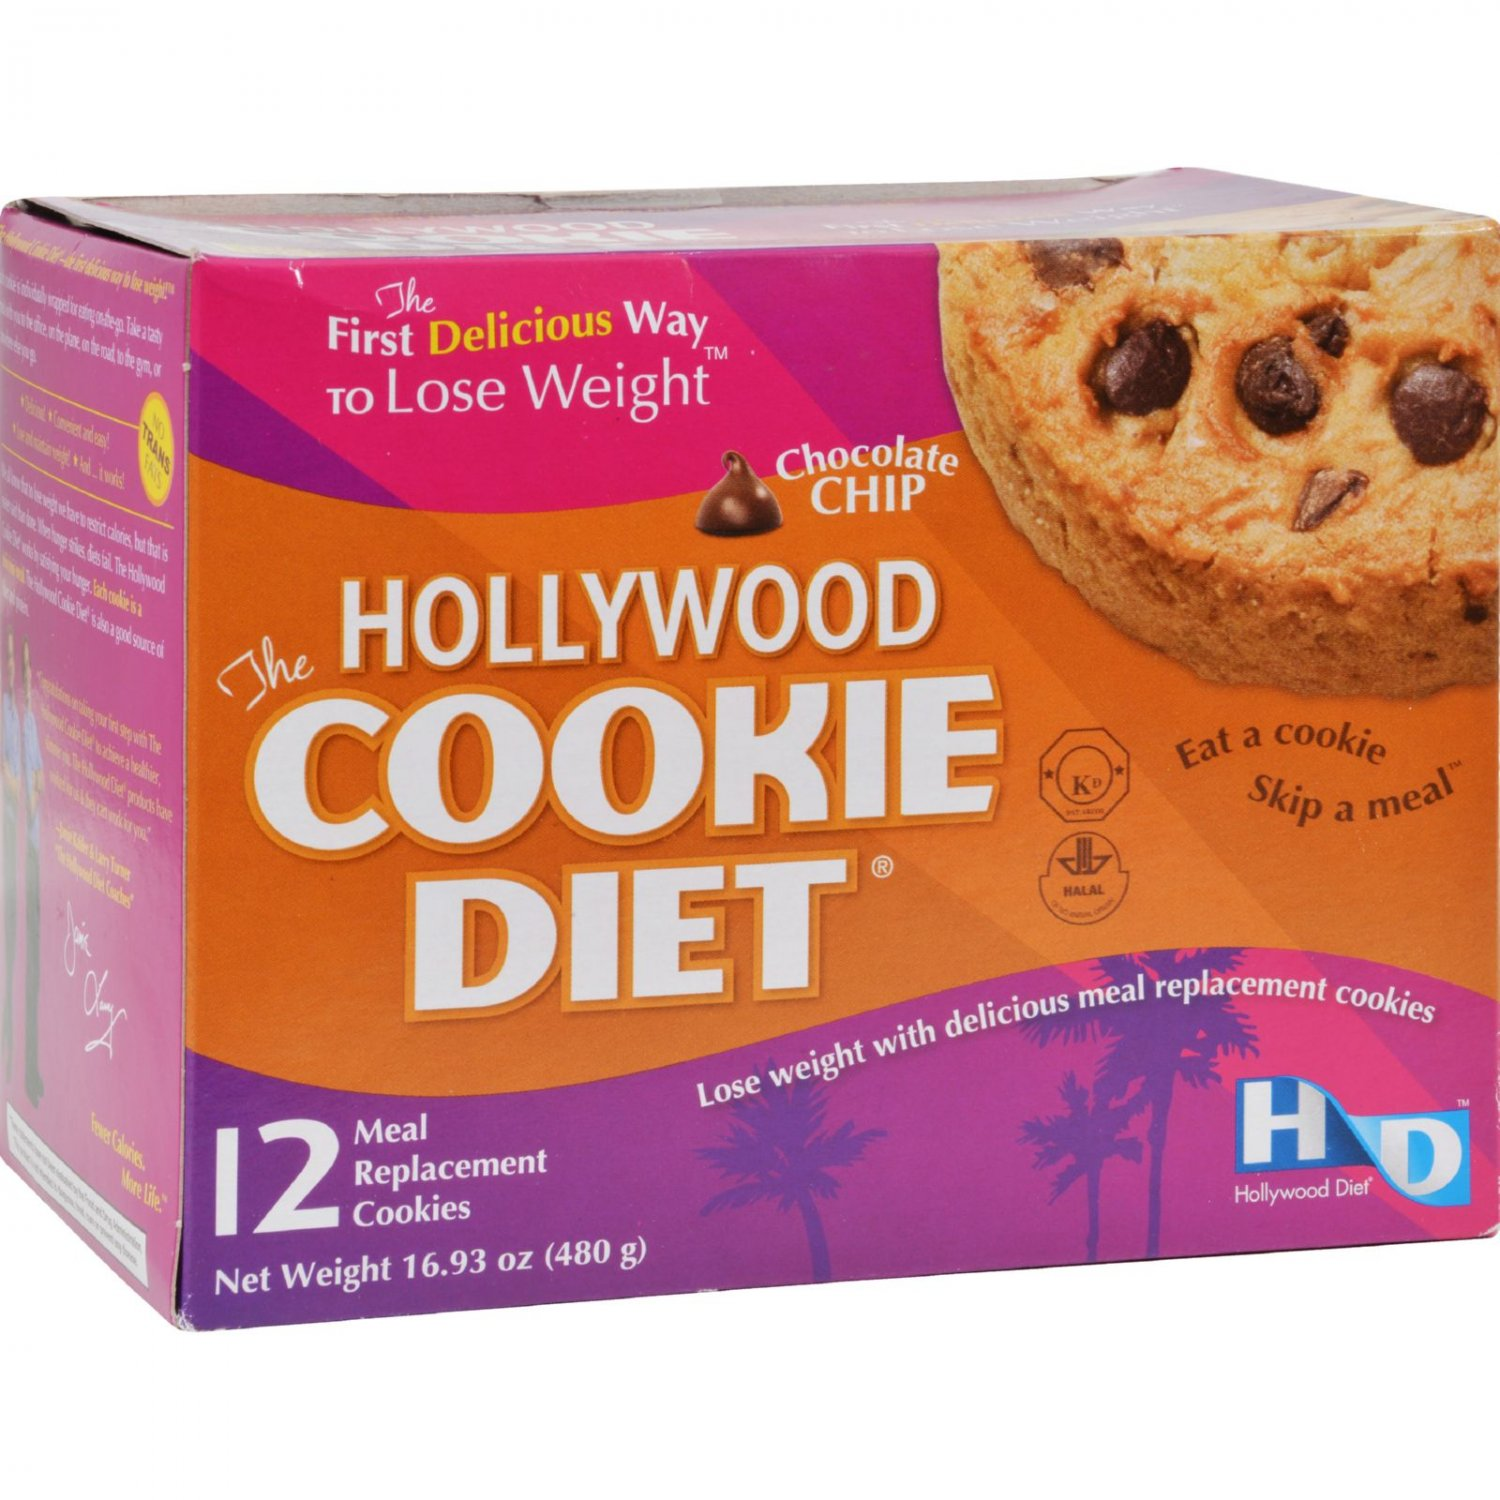 Hollywood Diet Miracle Products Cookie Diet Meal Replacement Cookie Chocolate Chip - 12 Cookies